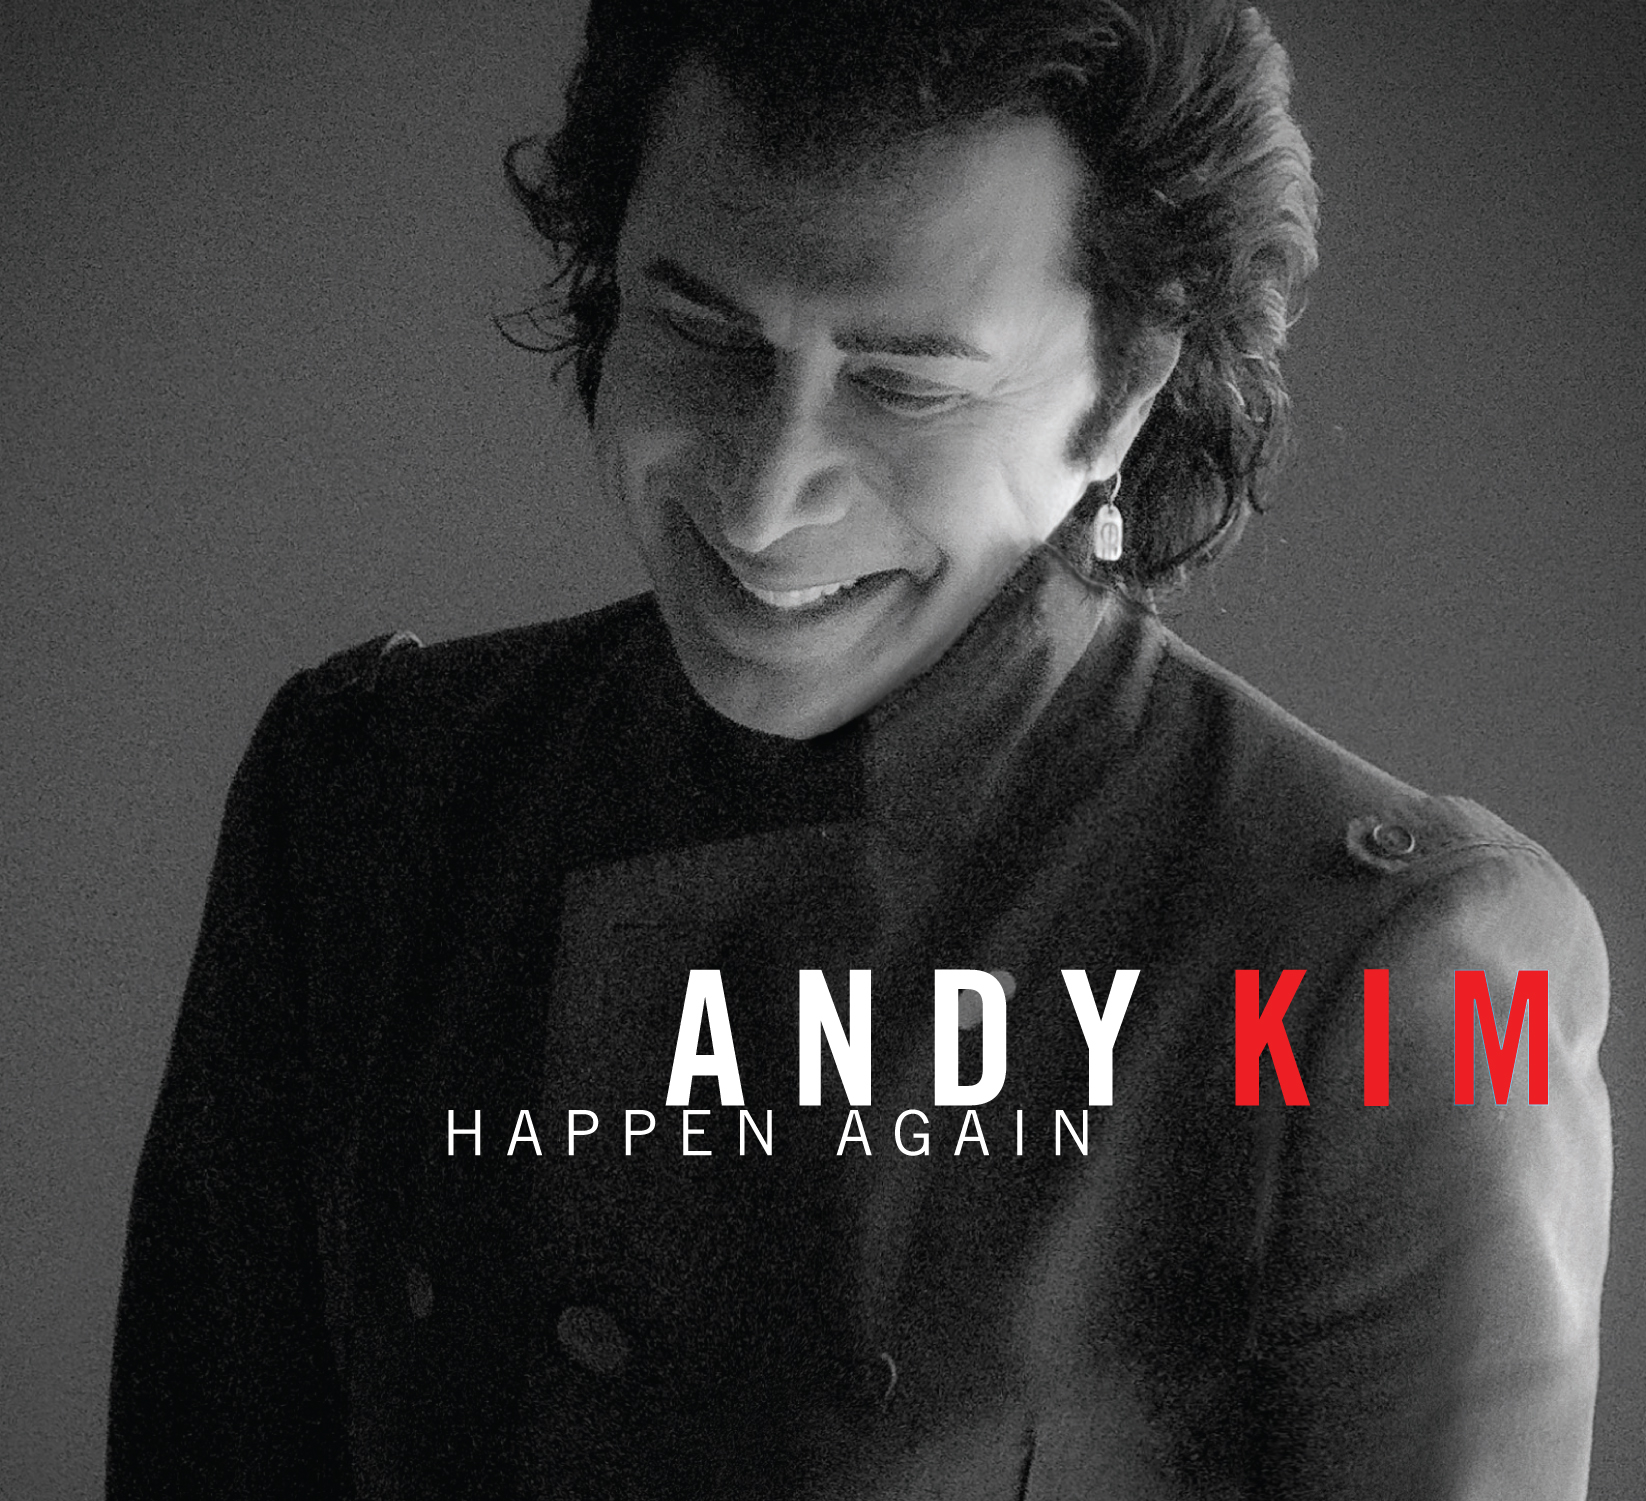 Free downloadandy kim happen again album after malvernweather Images